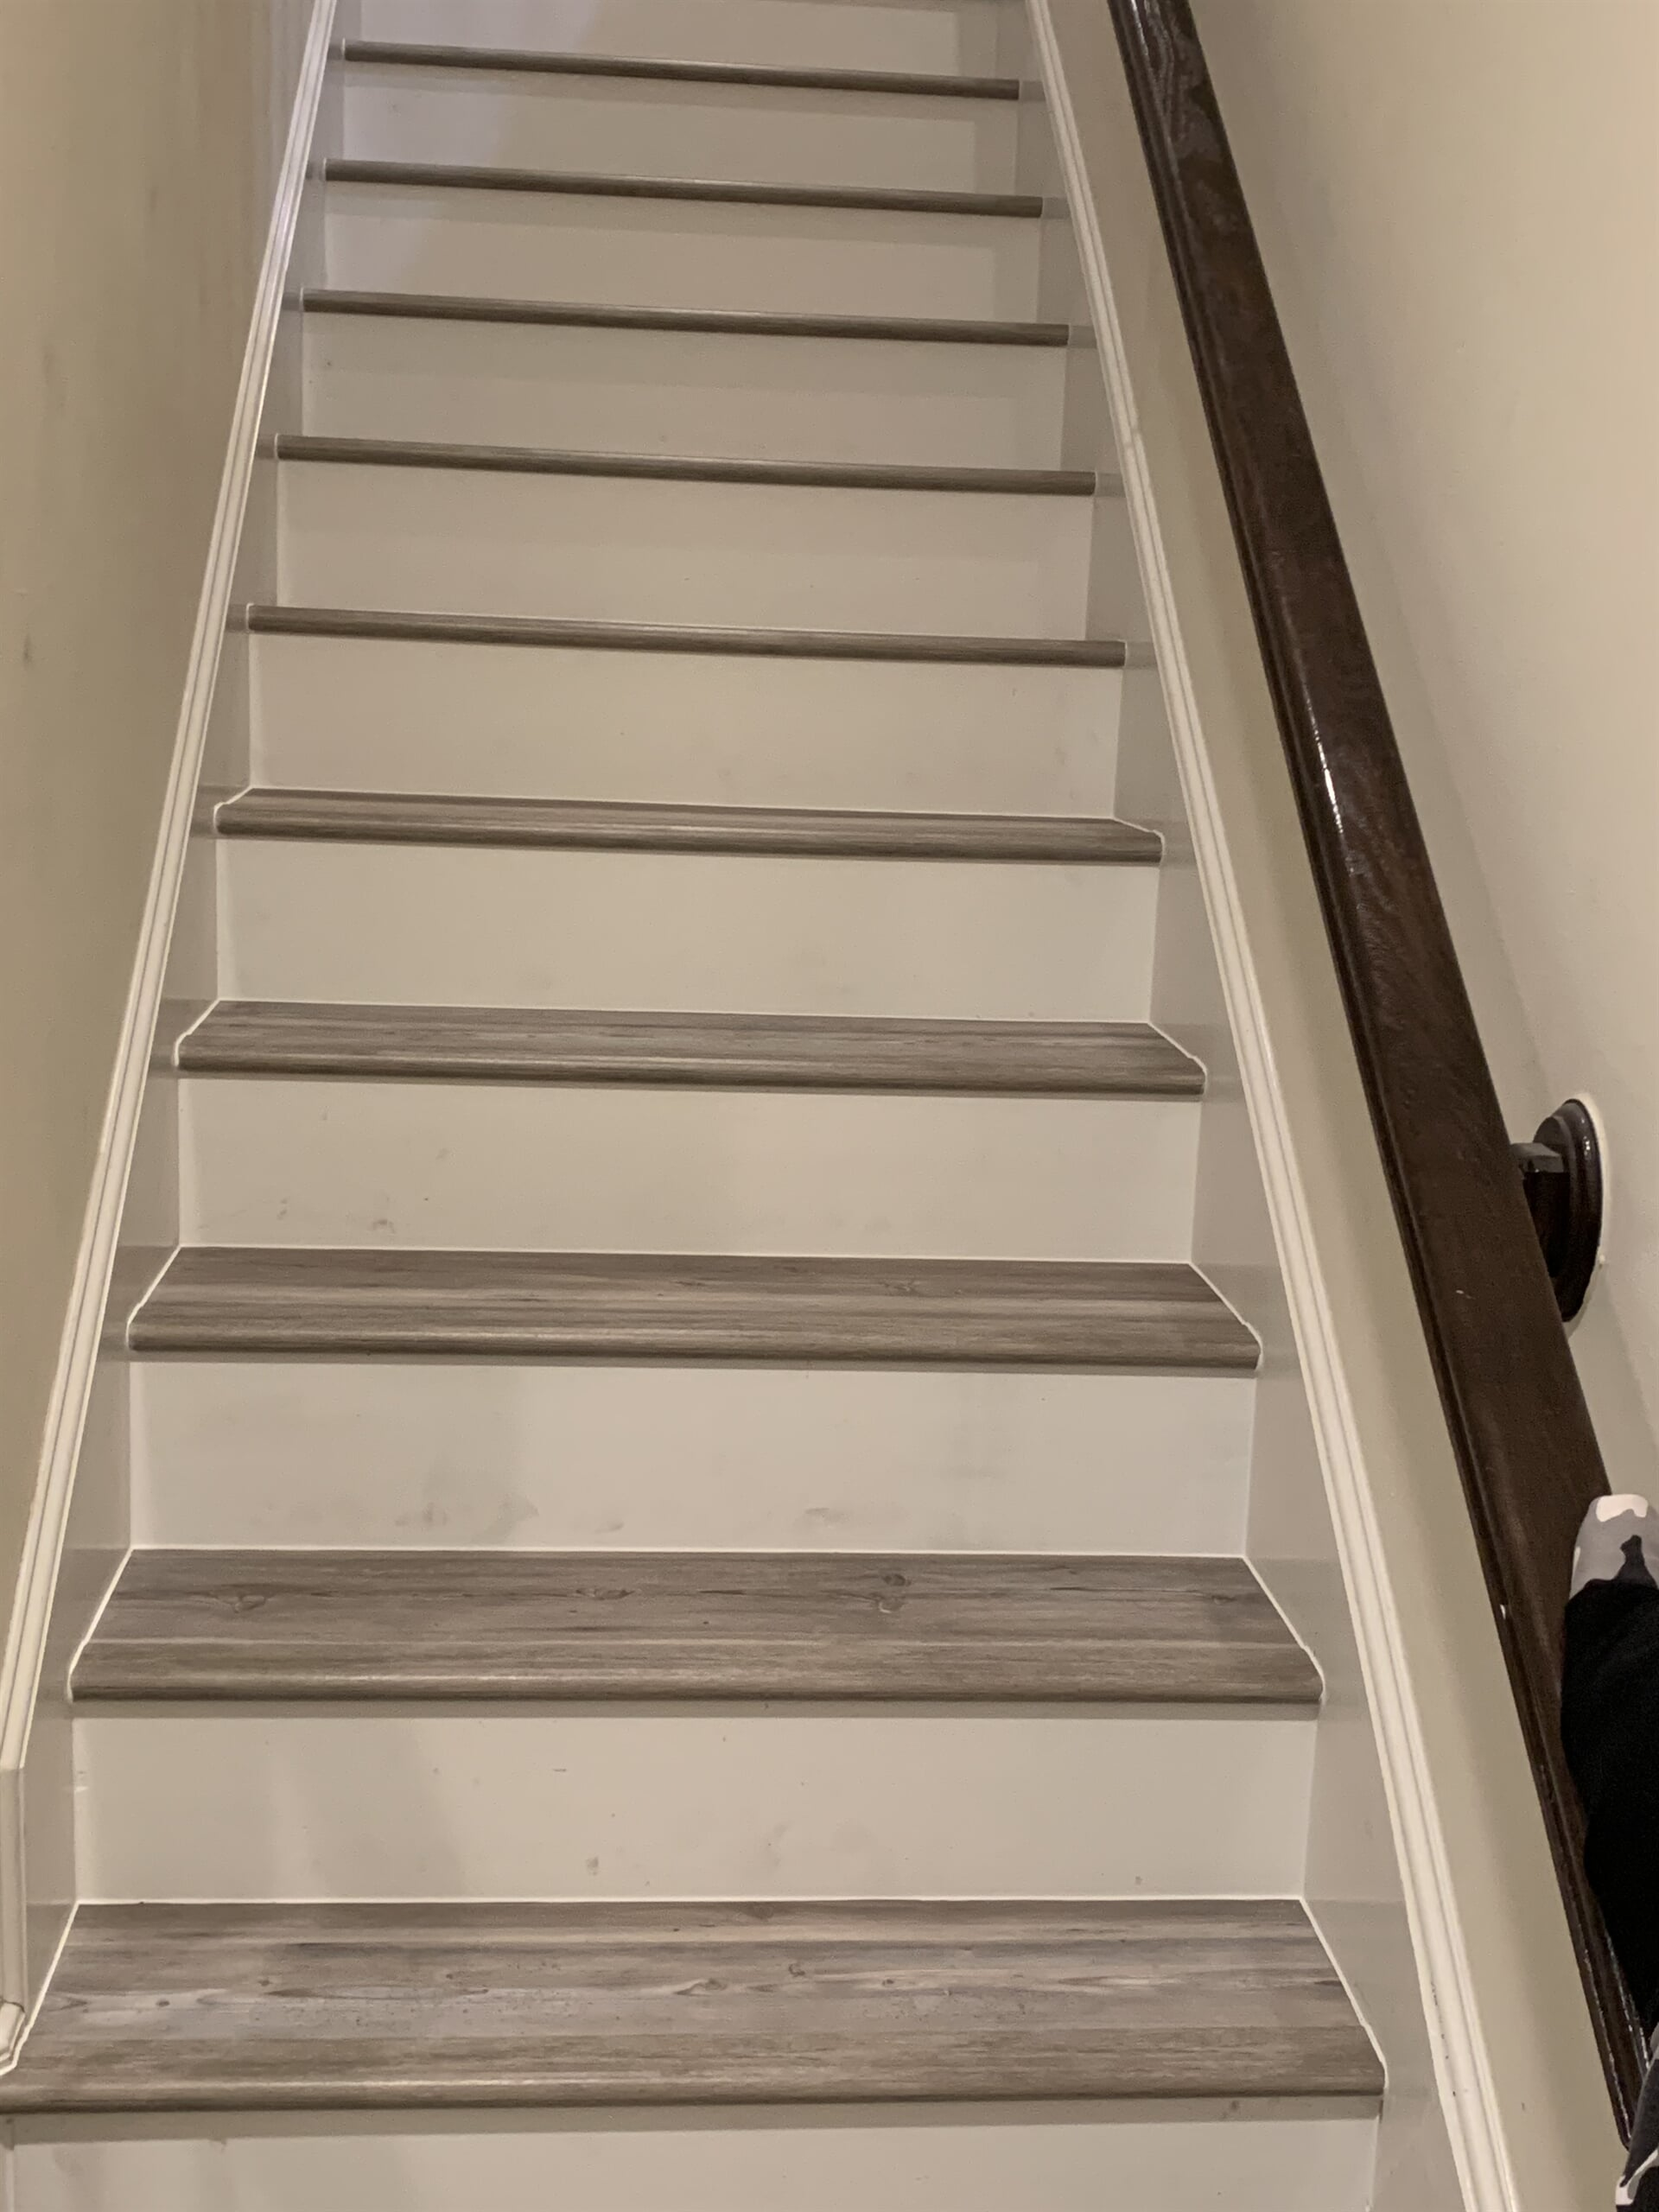 Hardwood stairs from Houston Floor Installation Services in Katy, TX